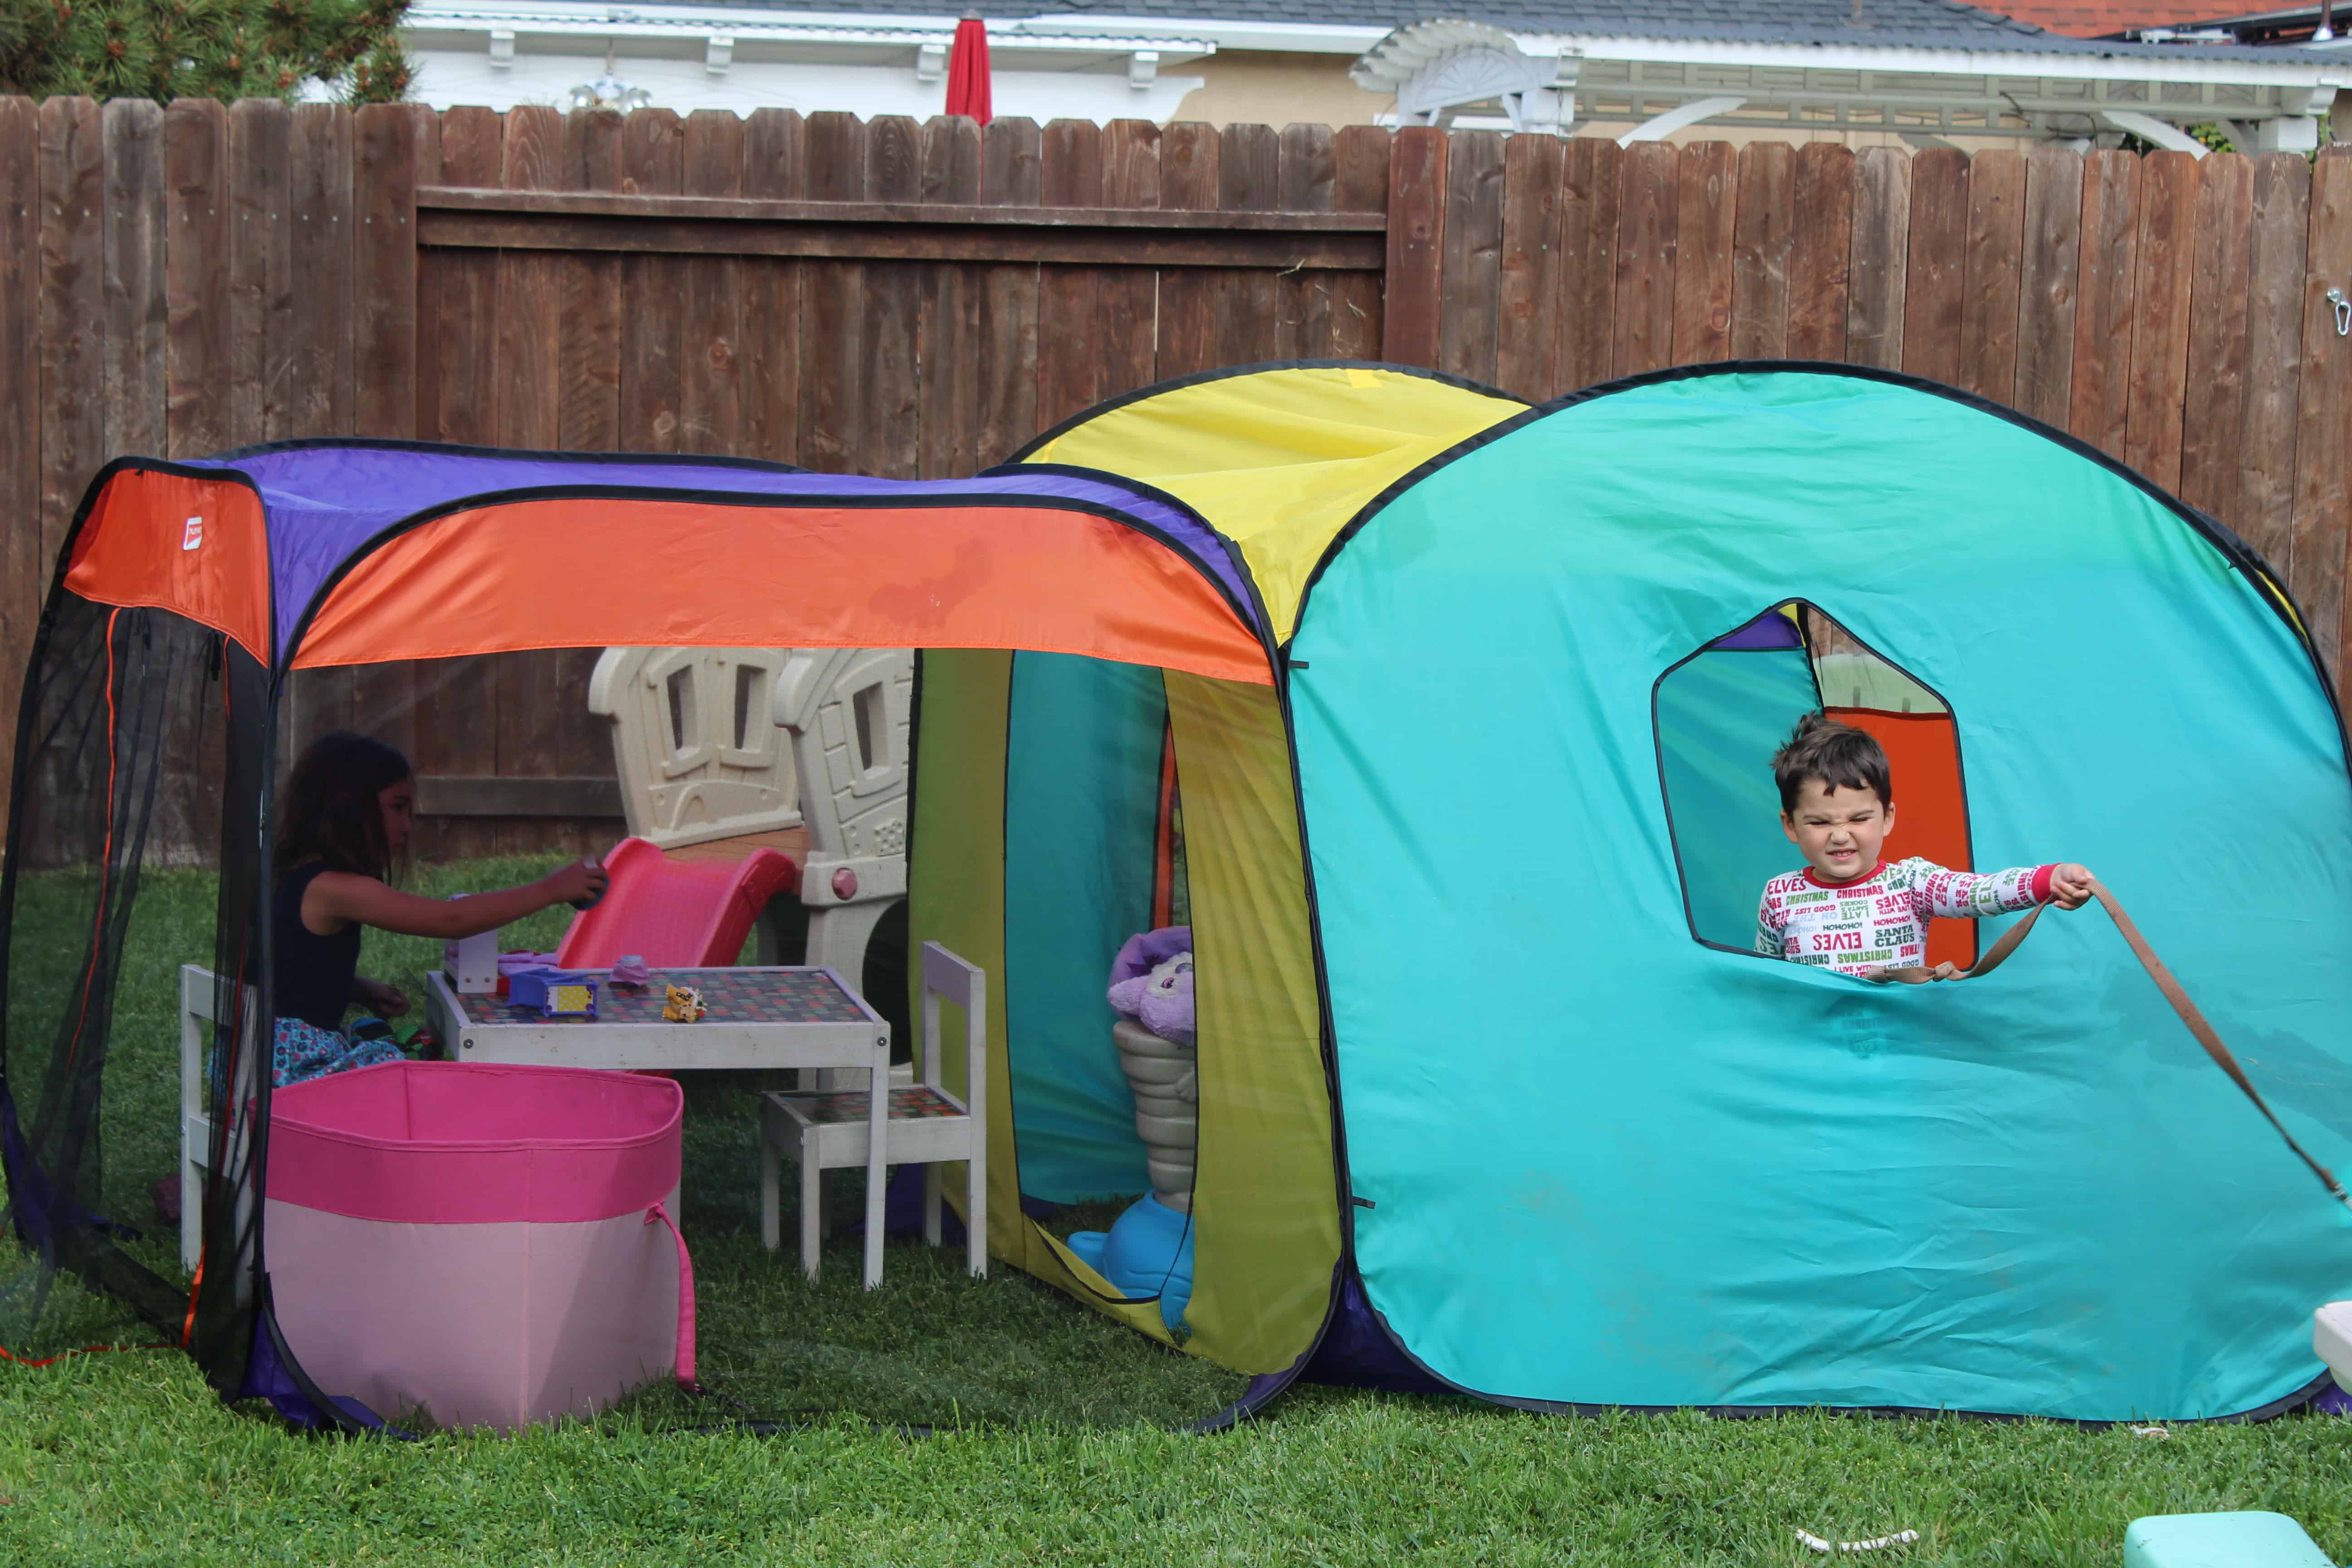 Two kids playing with their cool toys(forts) in the backyard.